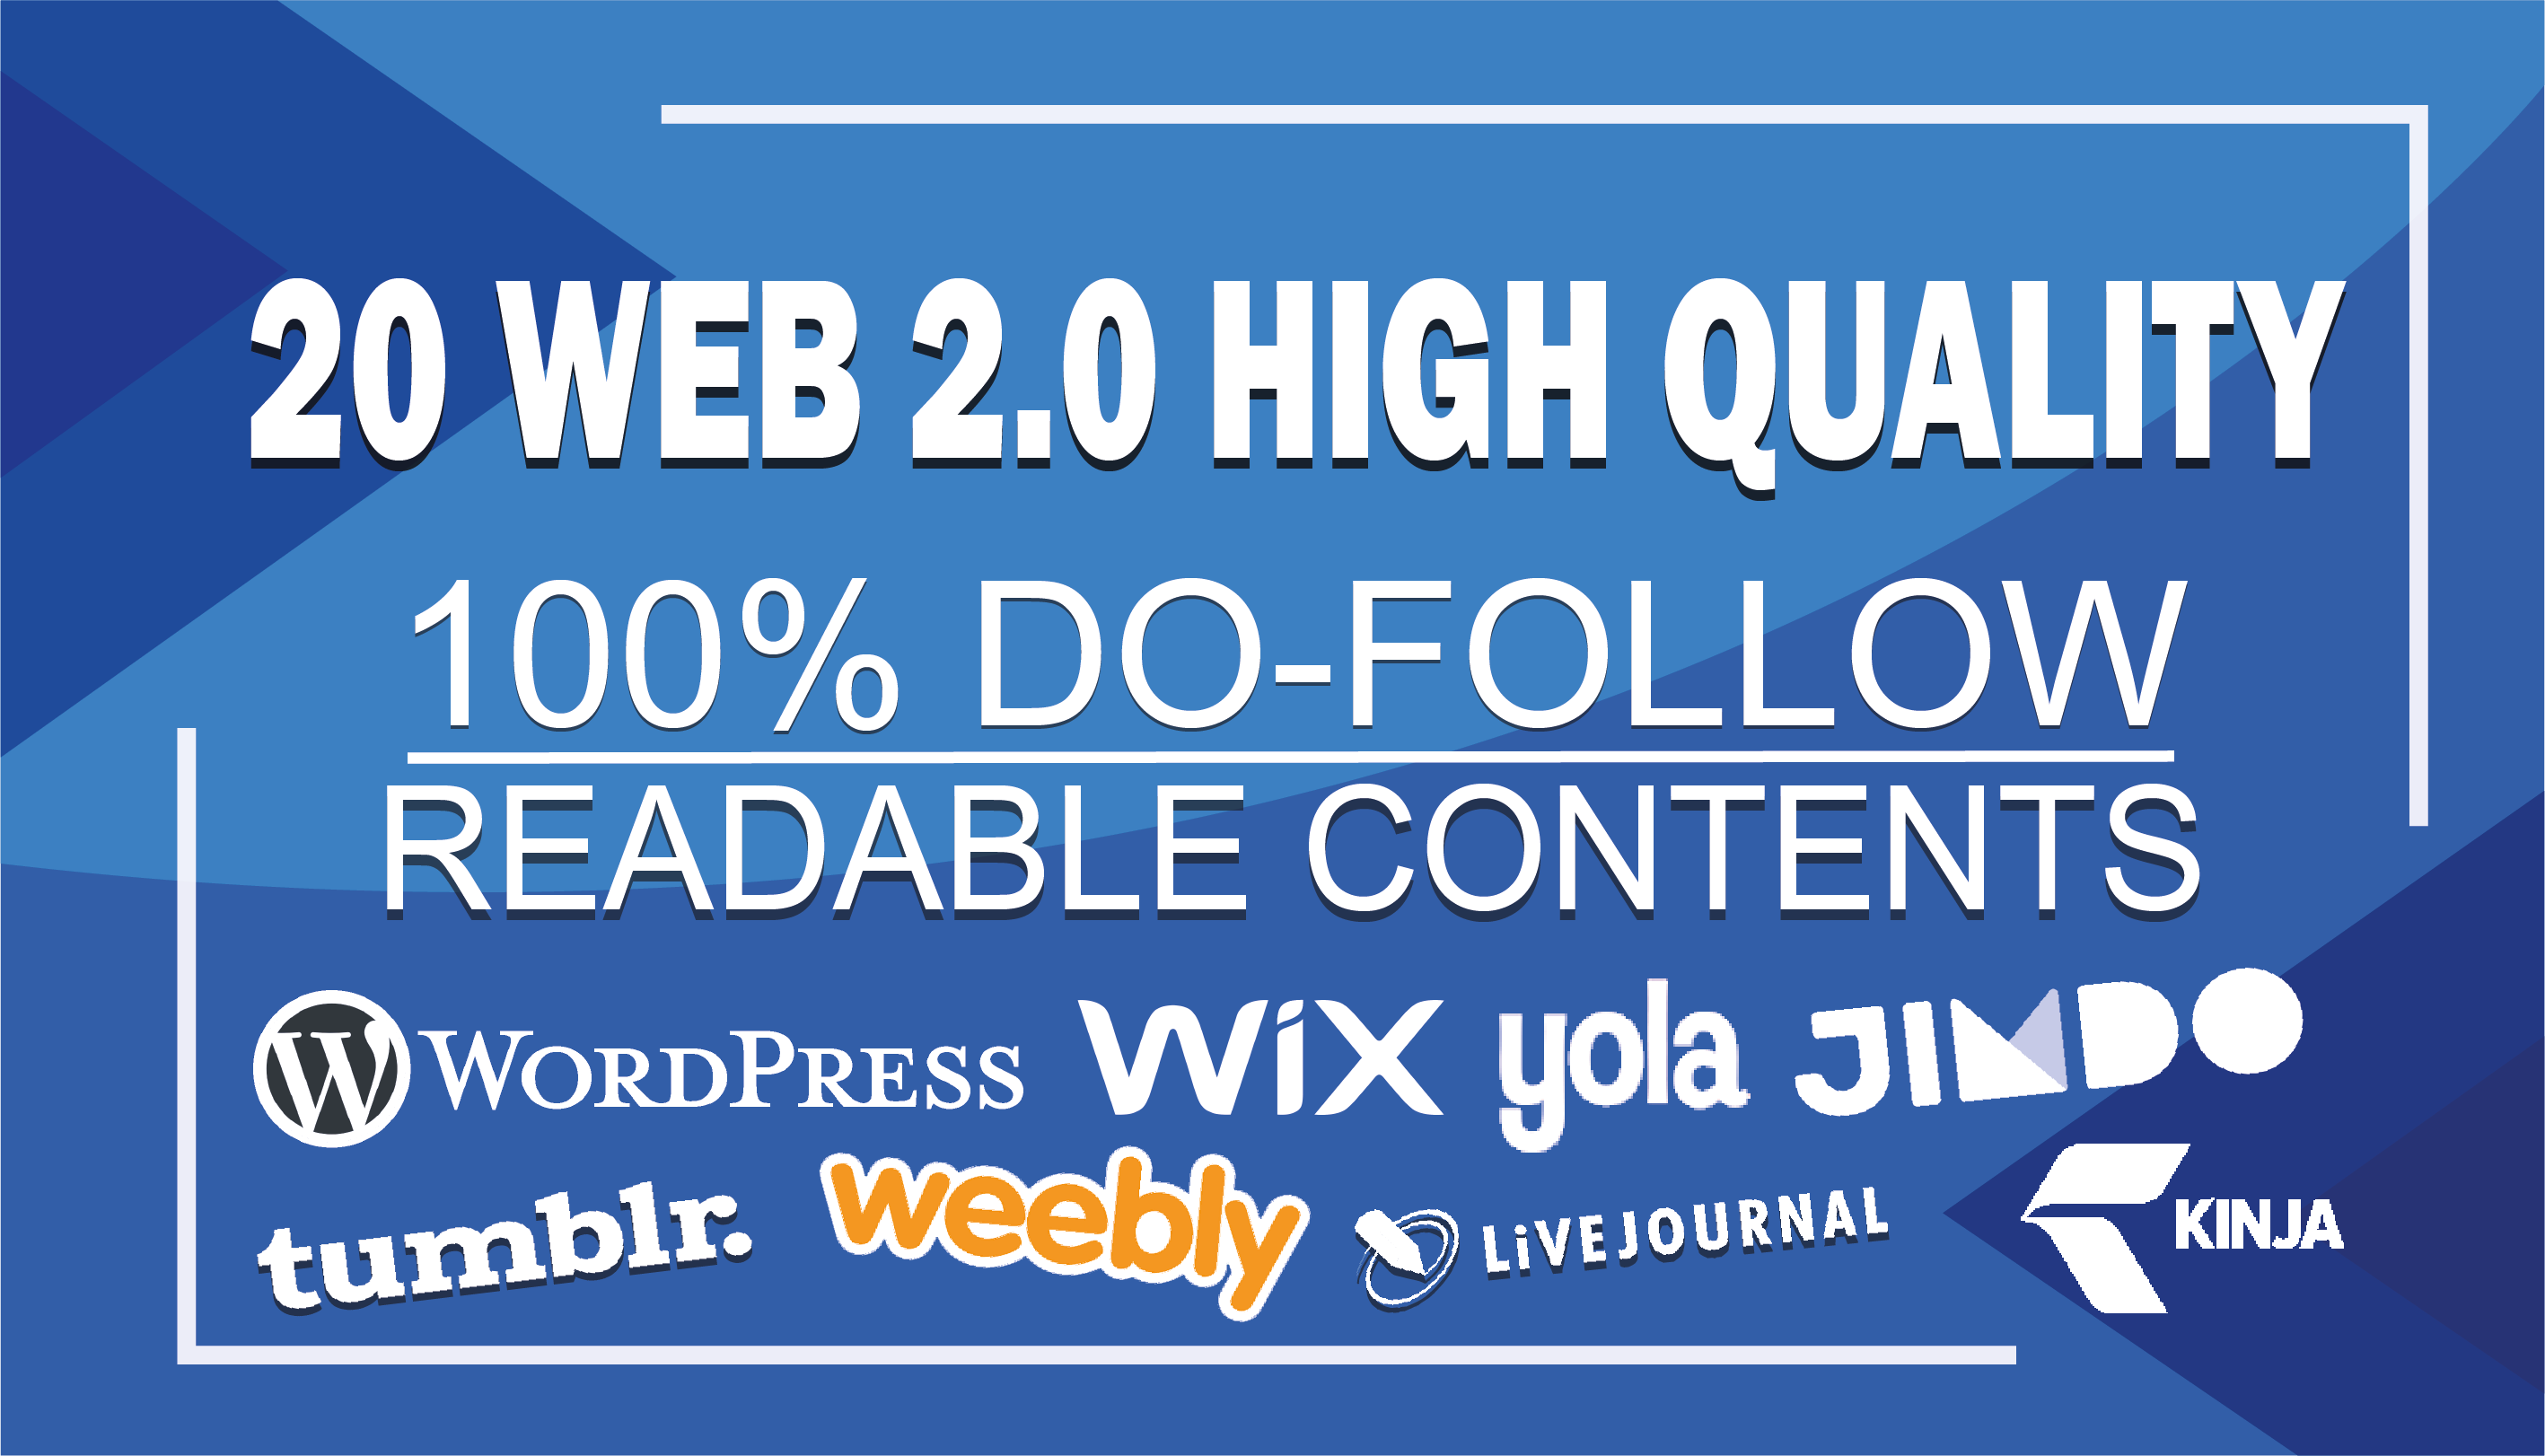 Create 20 High Quality Web 2.0